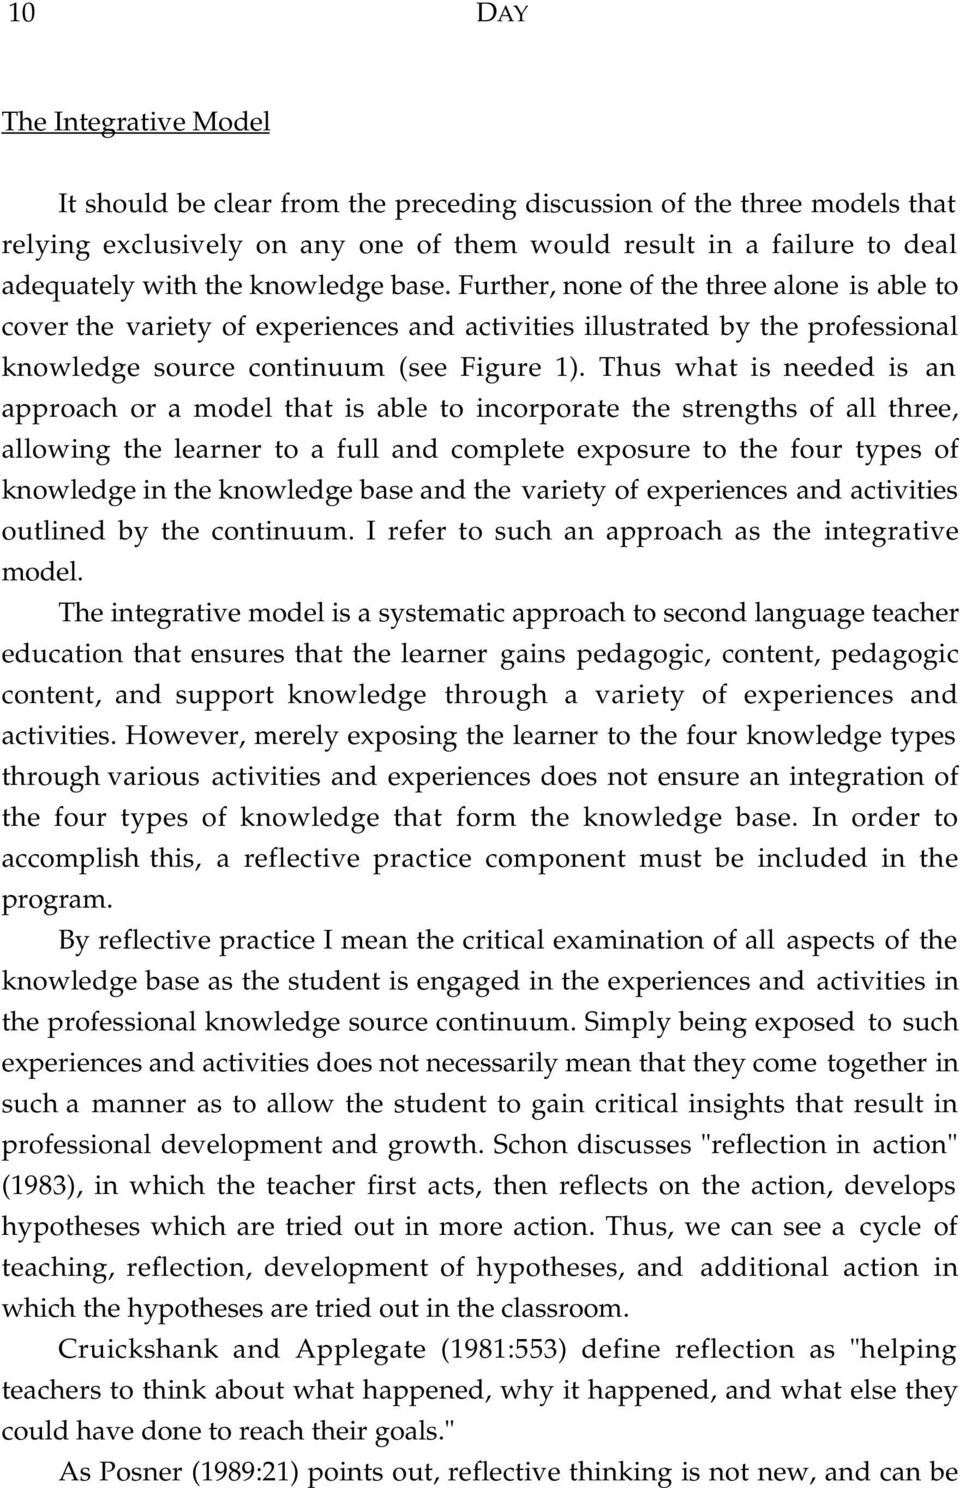 Thus what is needed is an approach or a model that is able to incorporate the strengths of all three, allowing the learner to a full and complete exposure to the four types of knowledge in the